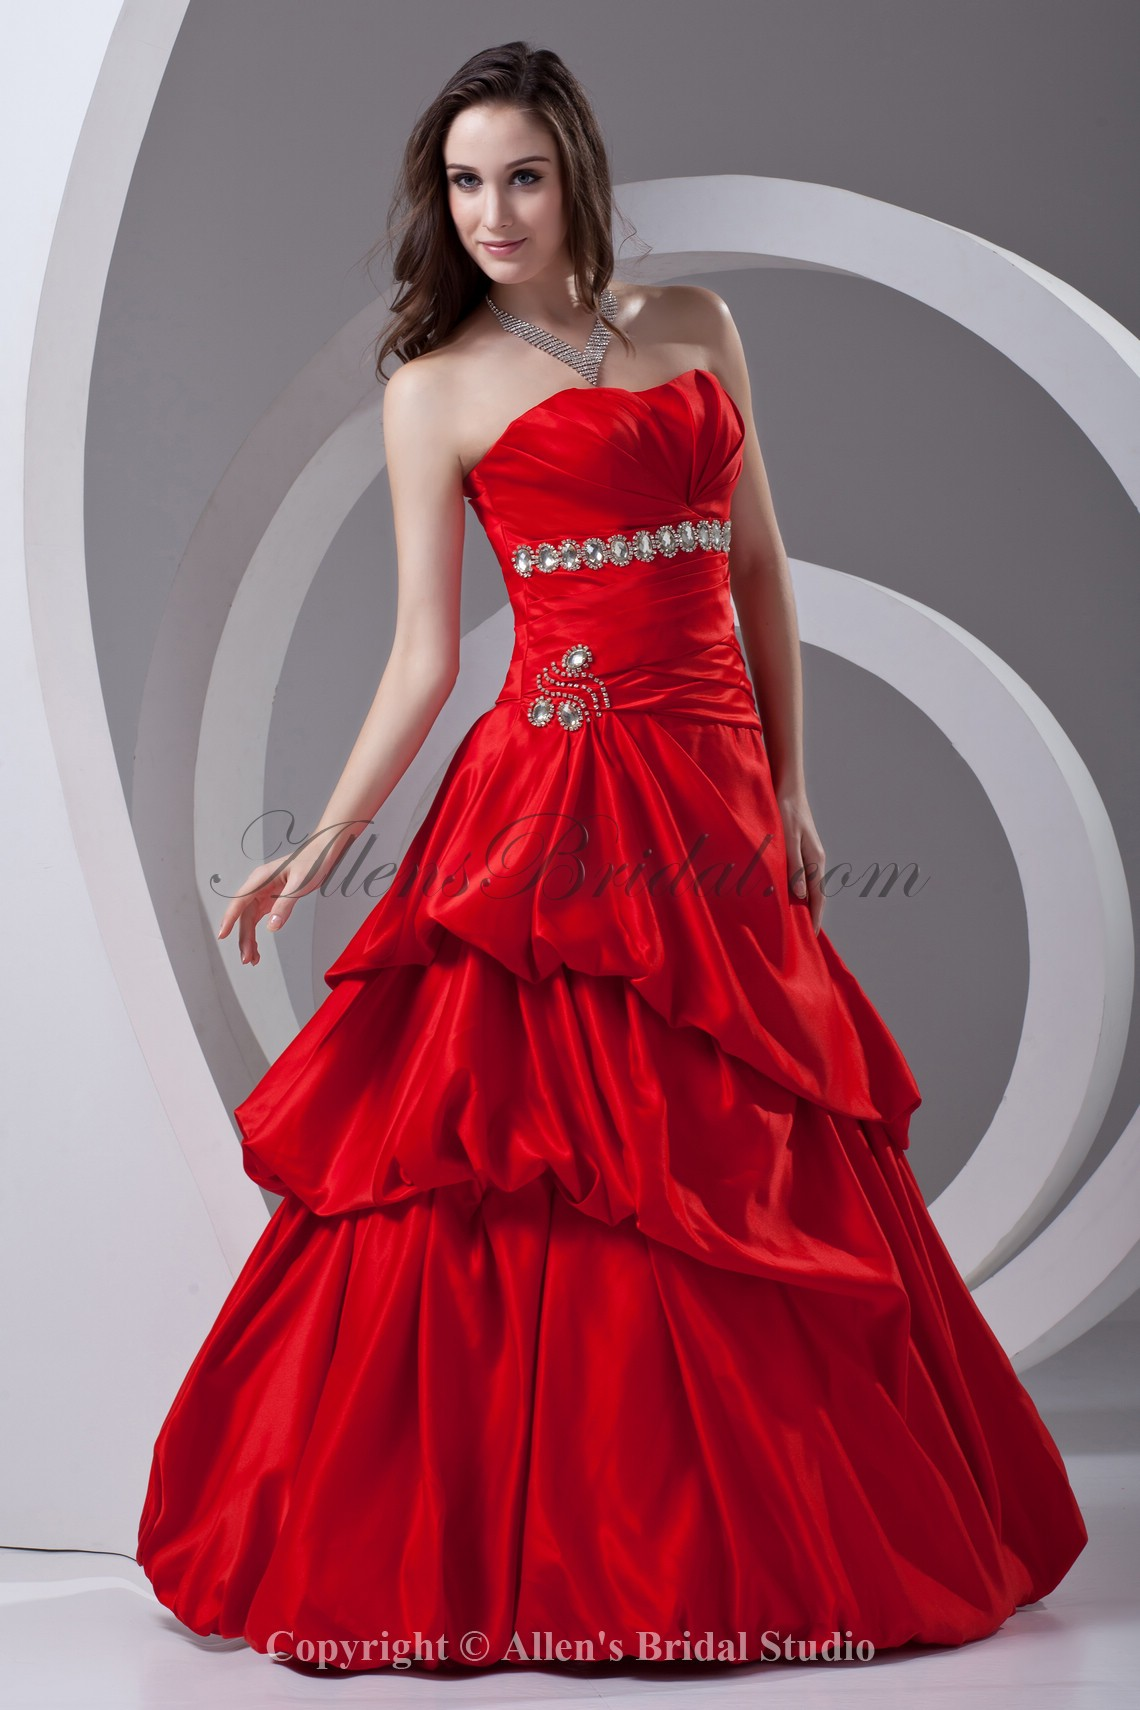 /361-2888/satin-sweetheart-neckline-ball-gown-floor-length-crystals-prom-dress.jpg